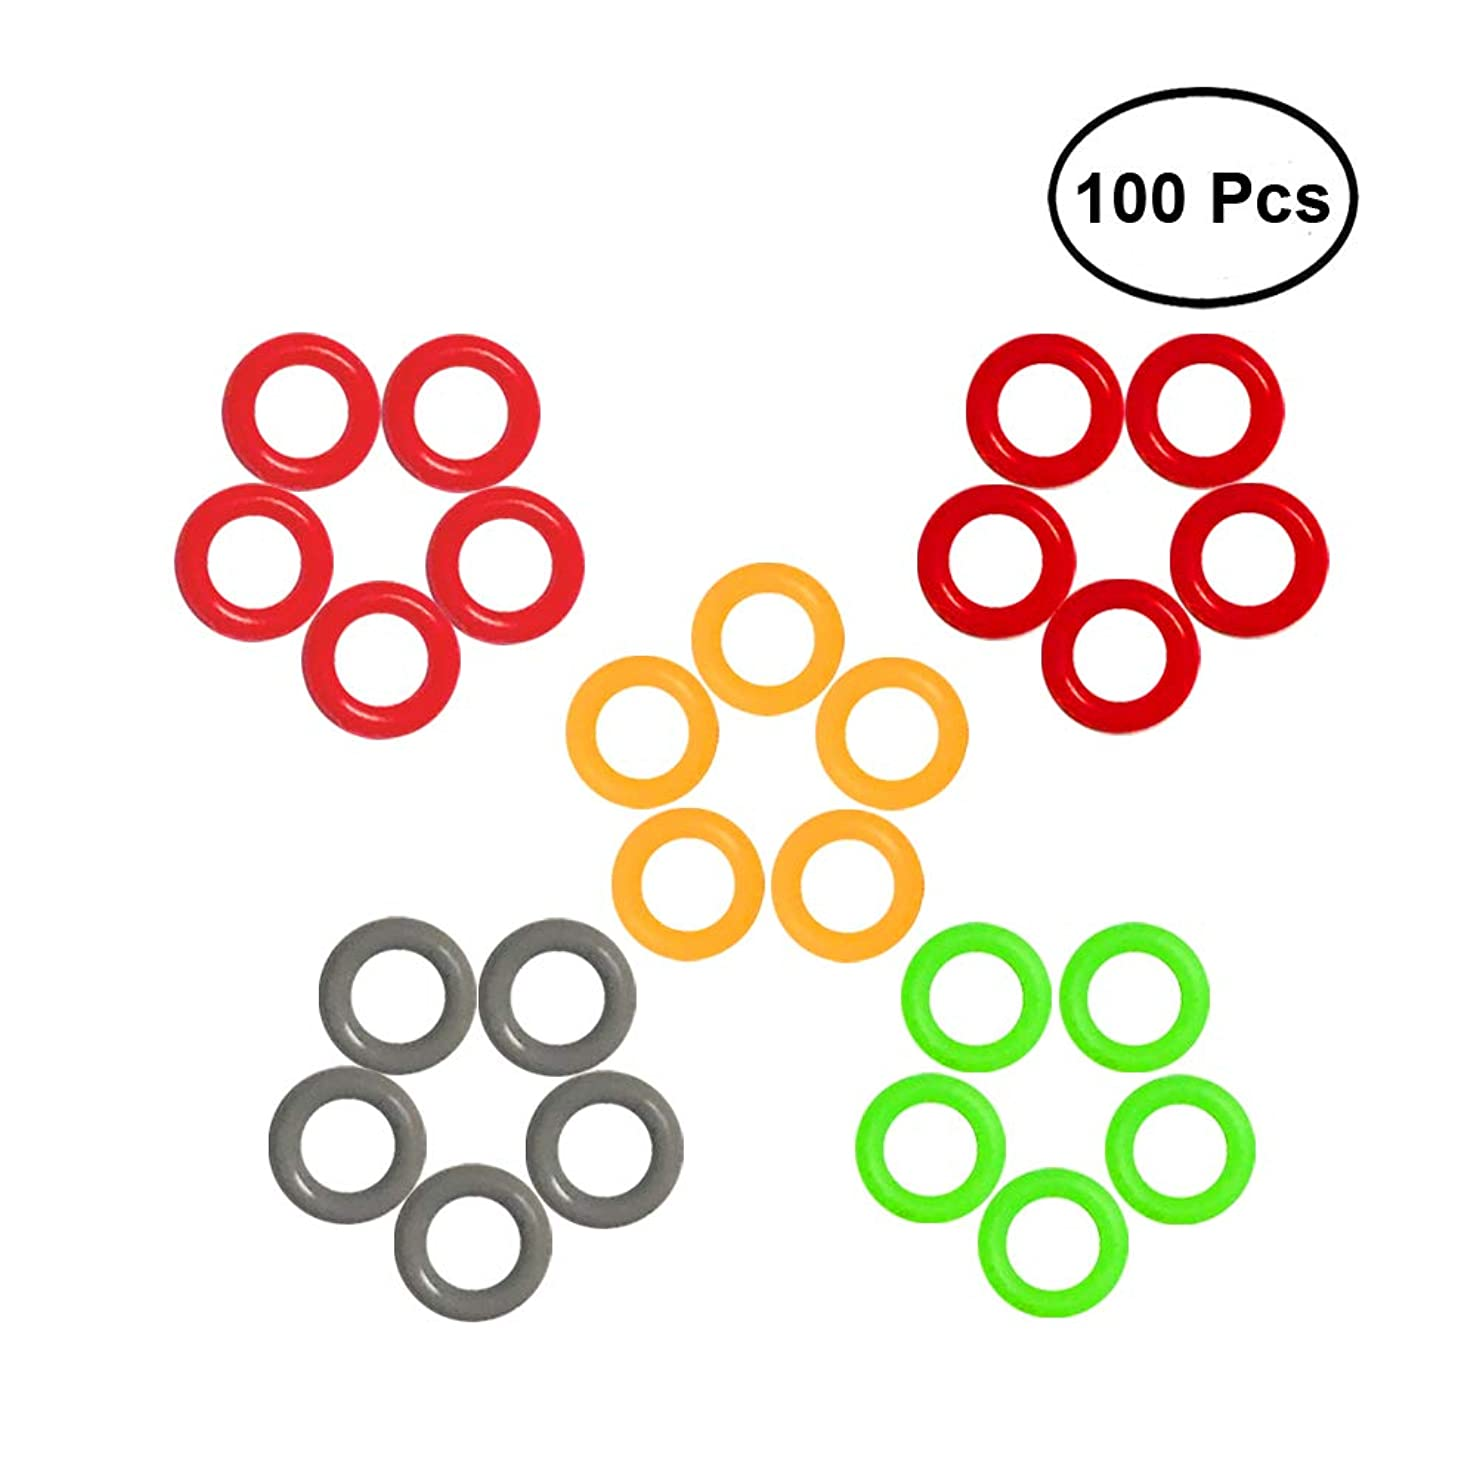 Zhonghuan Colorful Soft O-Rings & Stitch Ring Markers for Knitting/Crochet/etc. (Soft 6mm 100pcs)